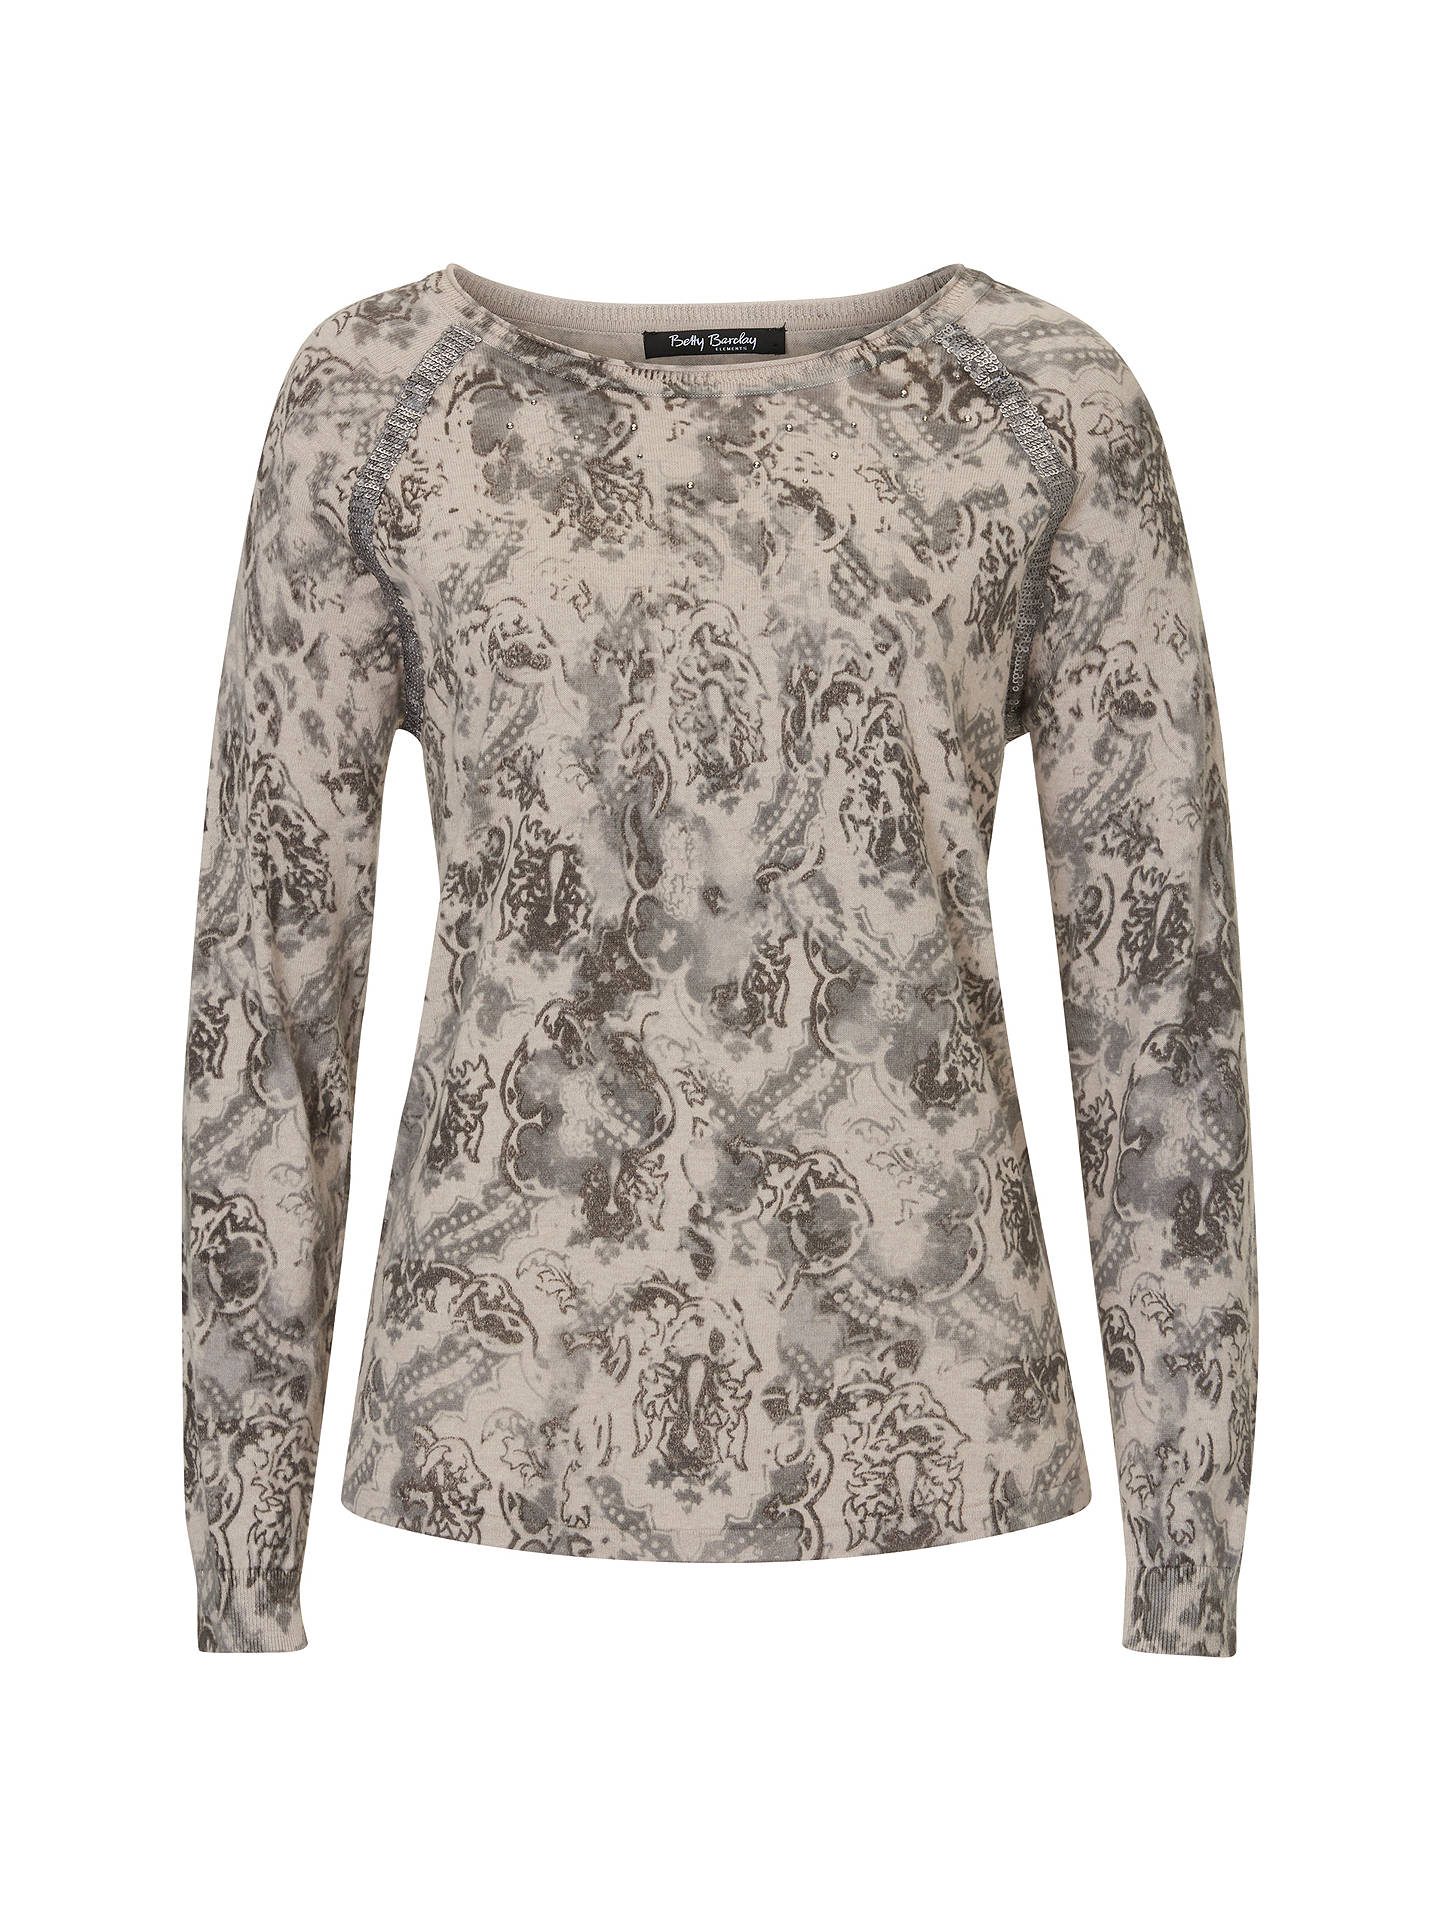 BuyBetty Barclay Embellished Print Jumper, Grey, 6 Online at johnlewis.com